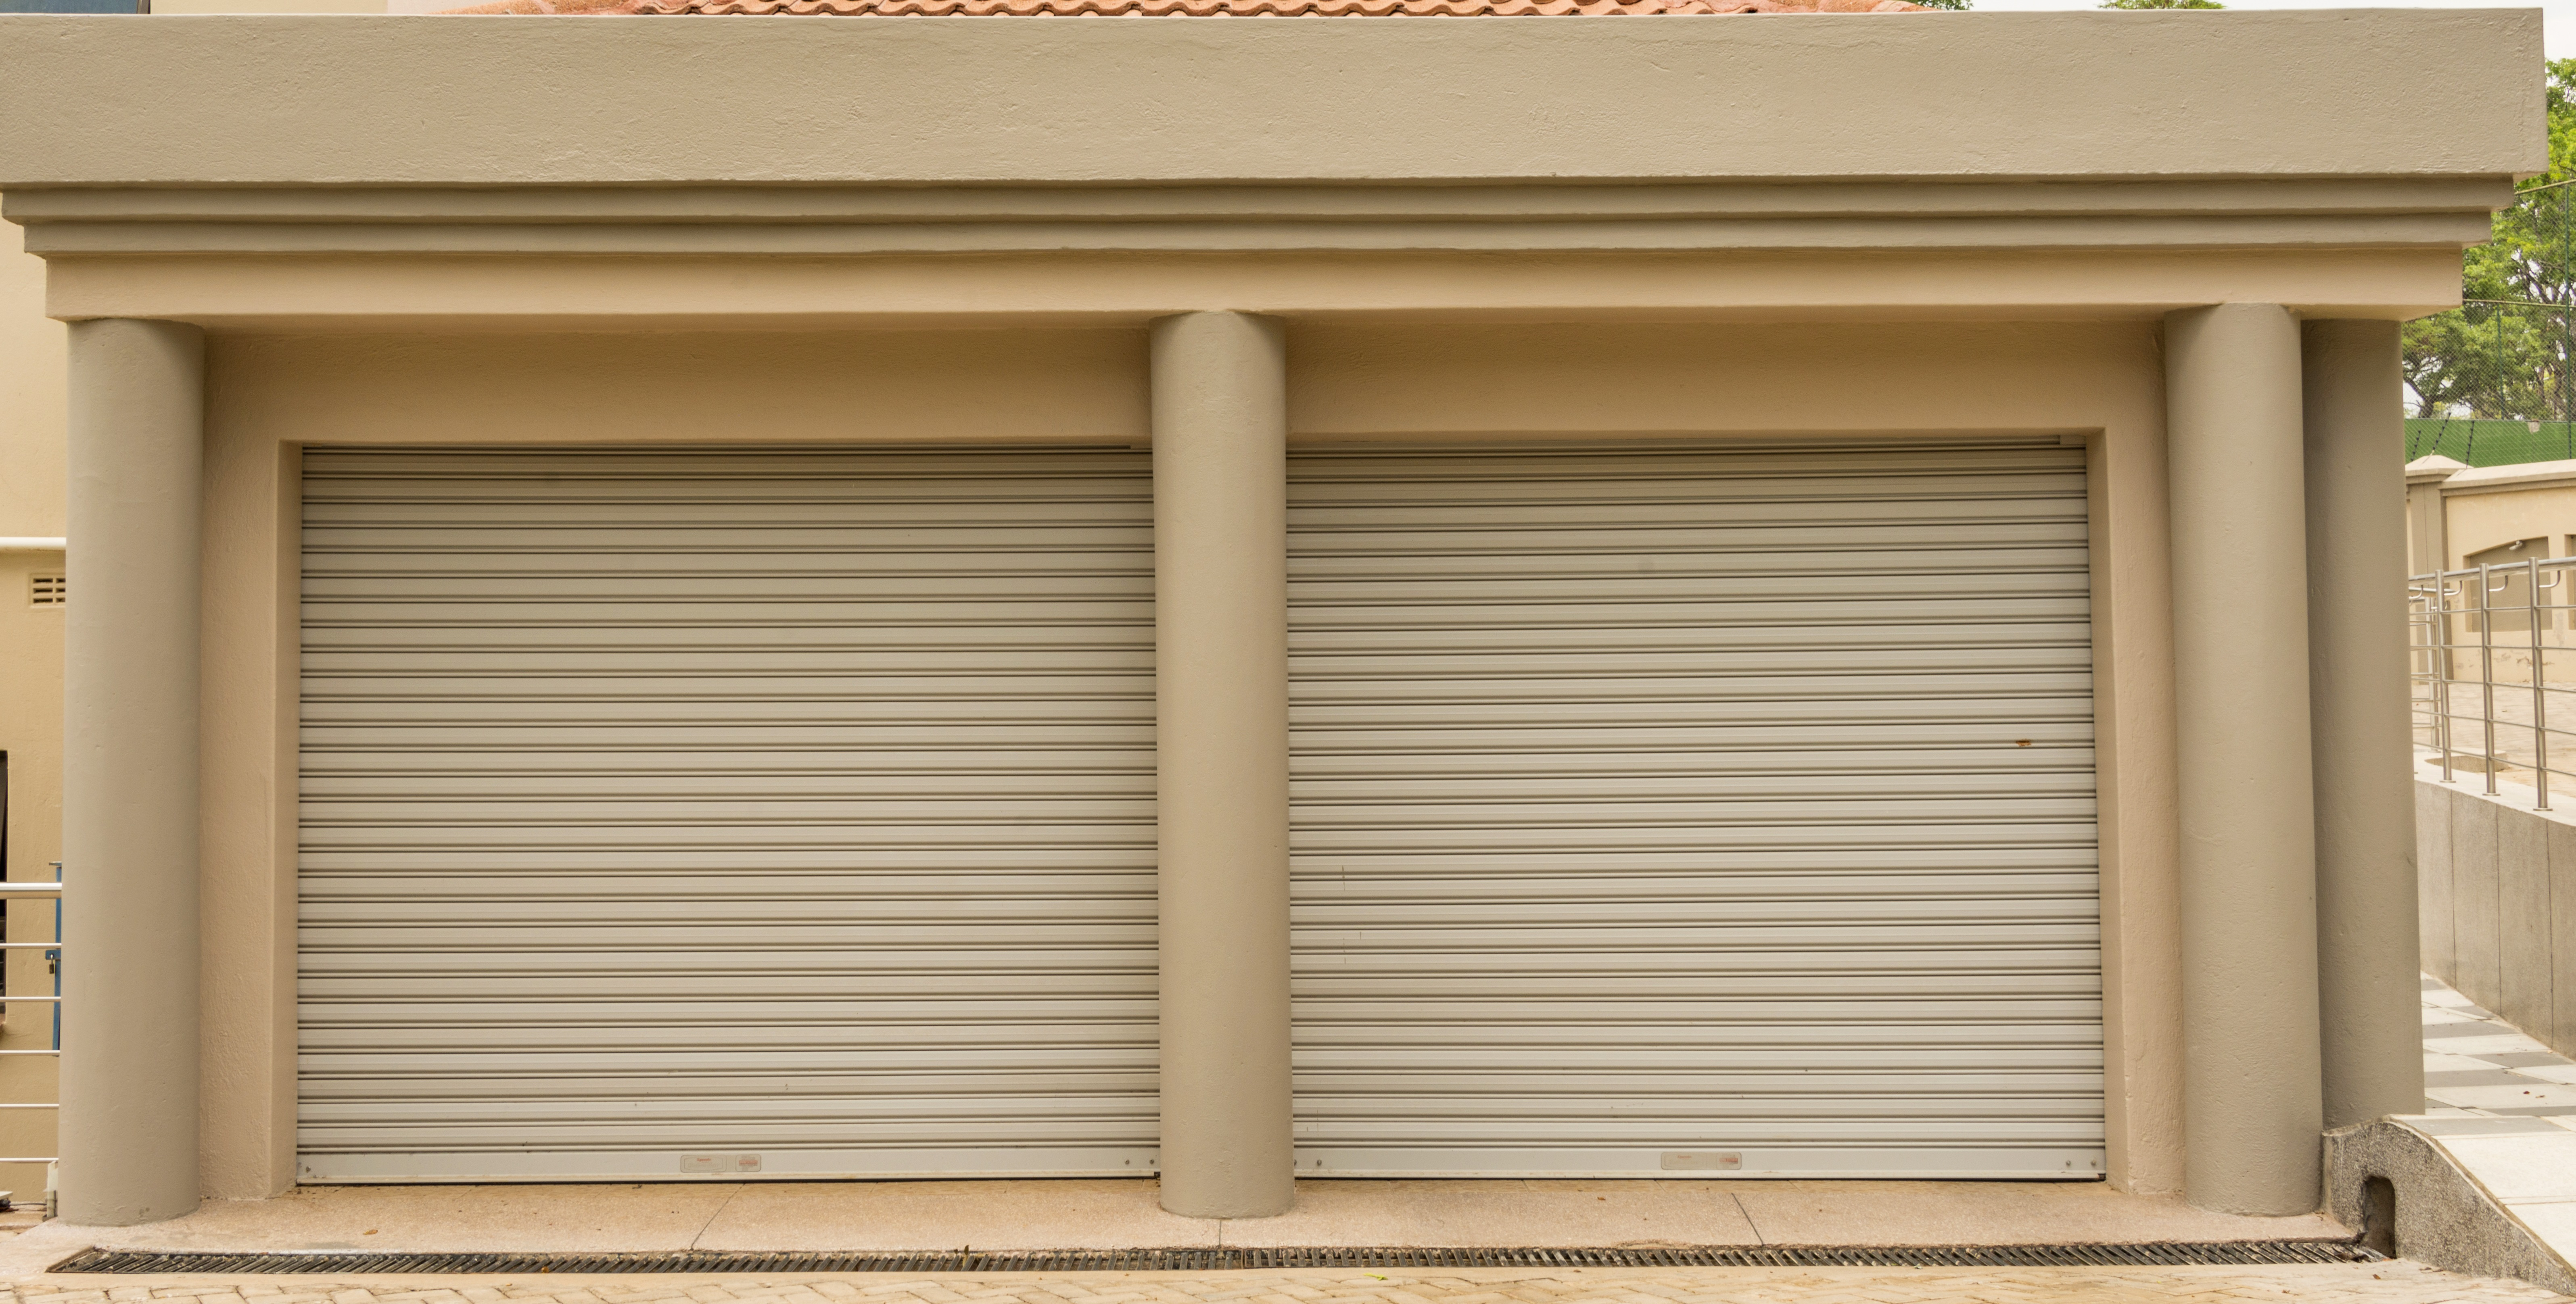 Xpanda Roller Shutter Doors Safeguard Security Zimbabwe